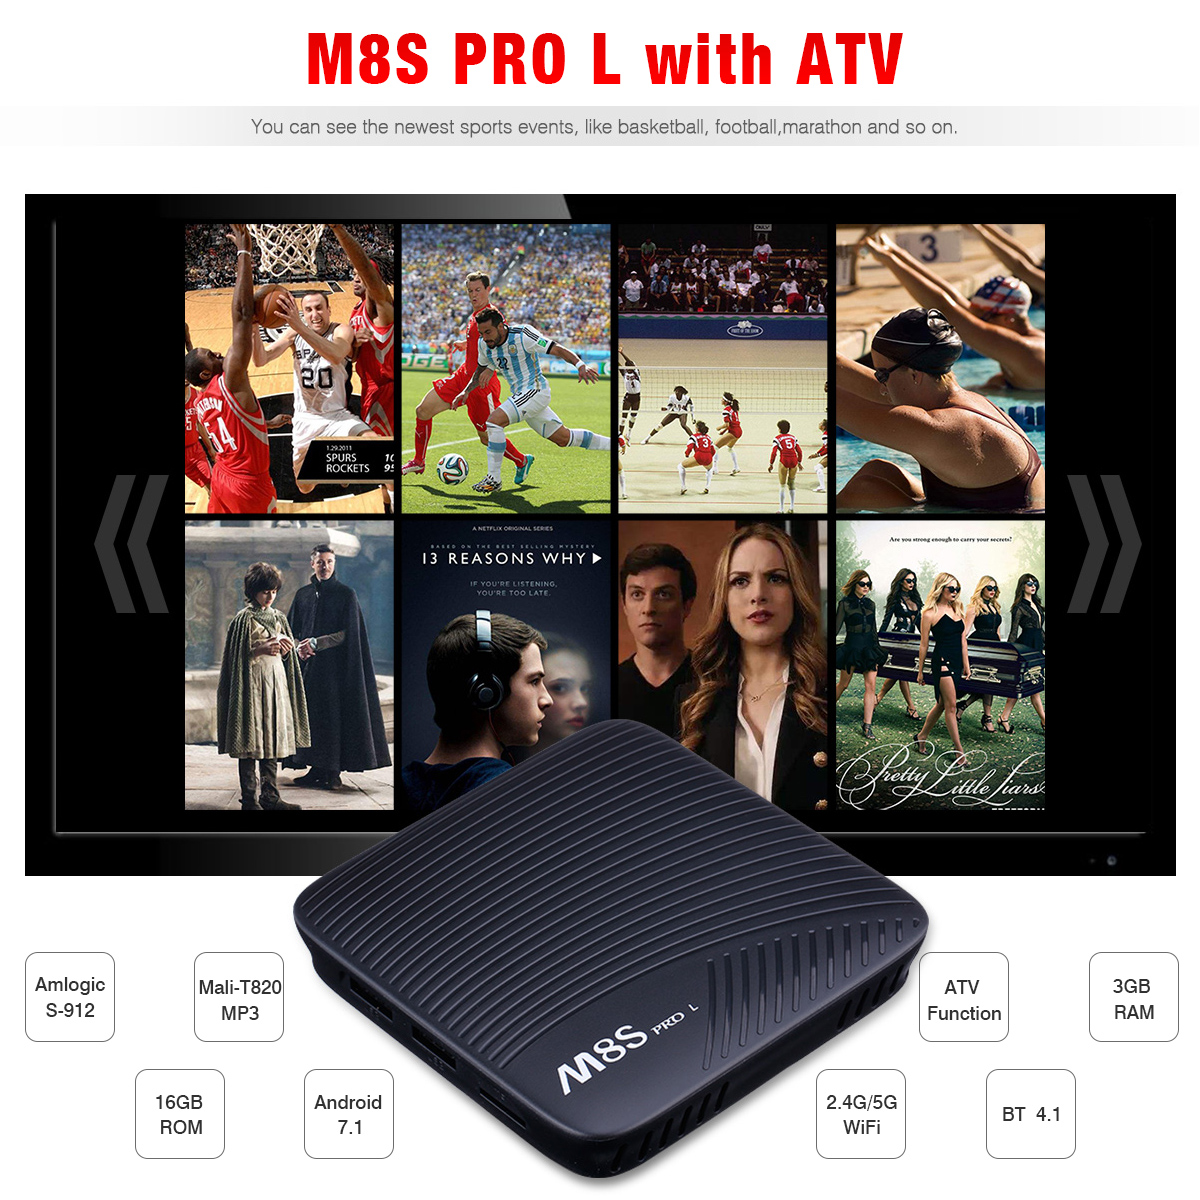 M8S PRO L ATV Android 7.1 Amlogic S-912 Octa Core 3GB+16GB Mali-T820MP3 GPU 4K Dual WIFI BT OTA TV BOX EU телеприставка vsmart m8 amlogic s802 2 8 2ghz 4k android ota hdmi bluetooth 4 0